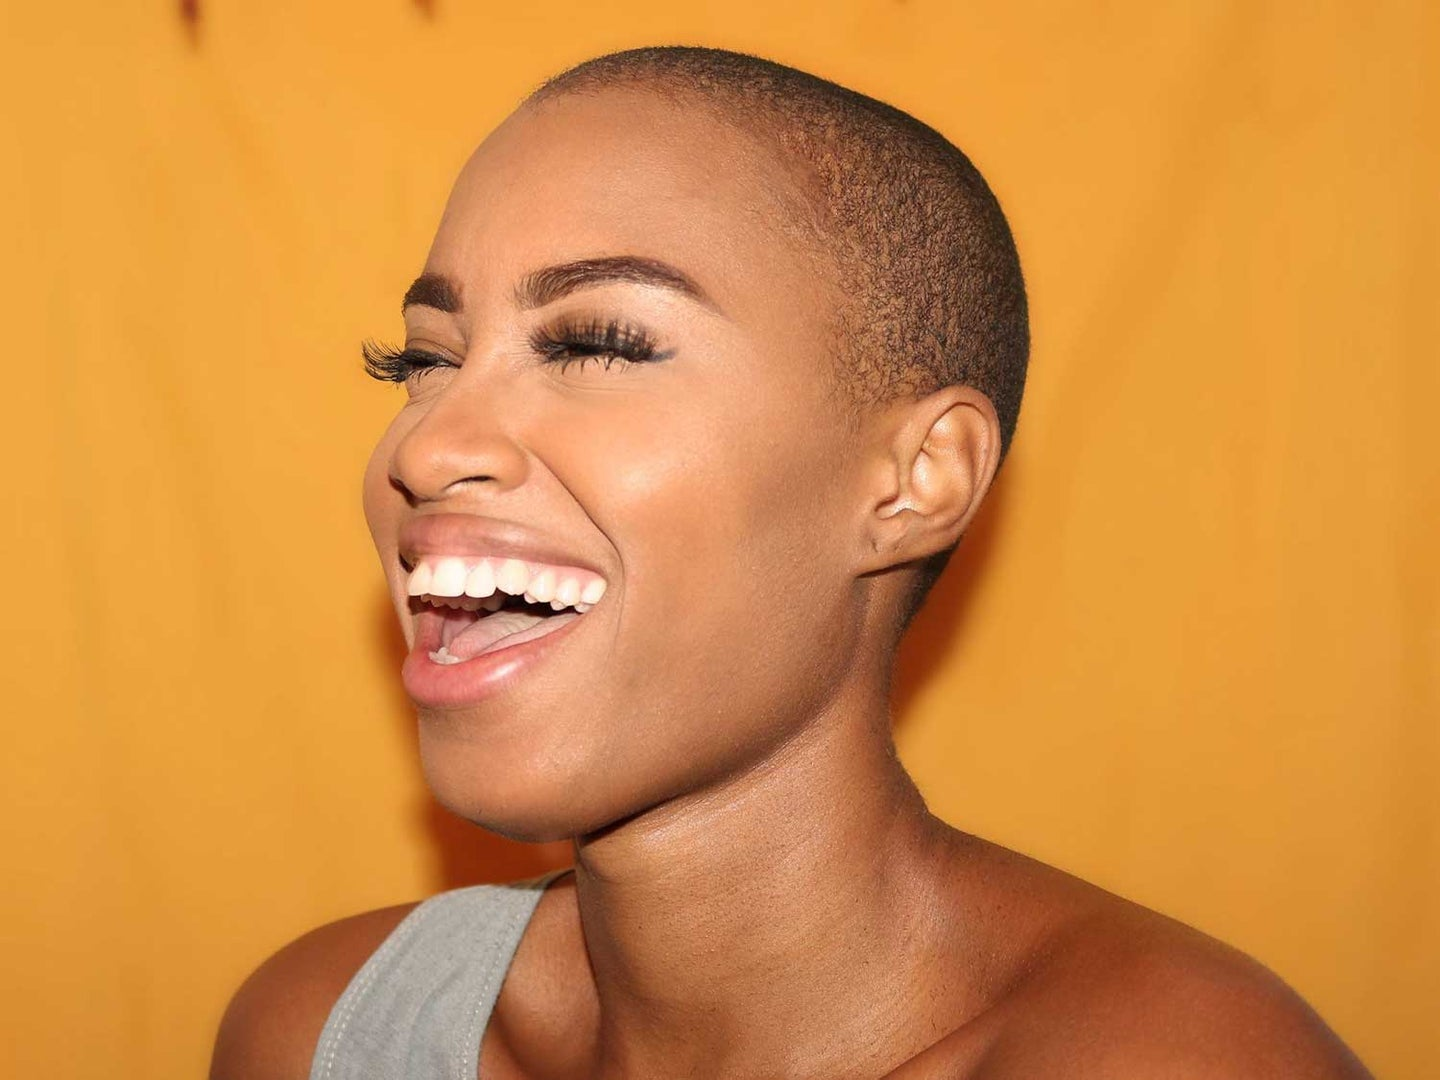 Woman with glowing skin laughing